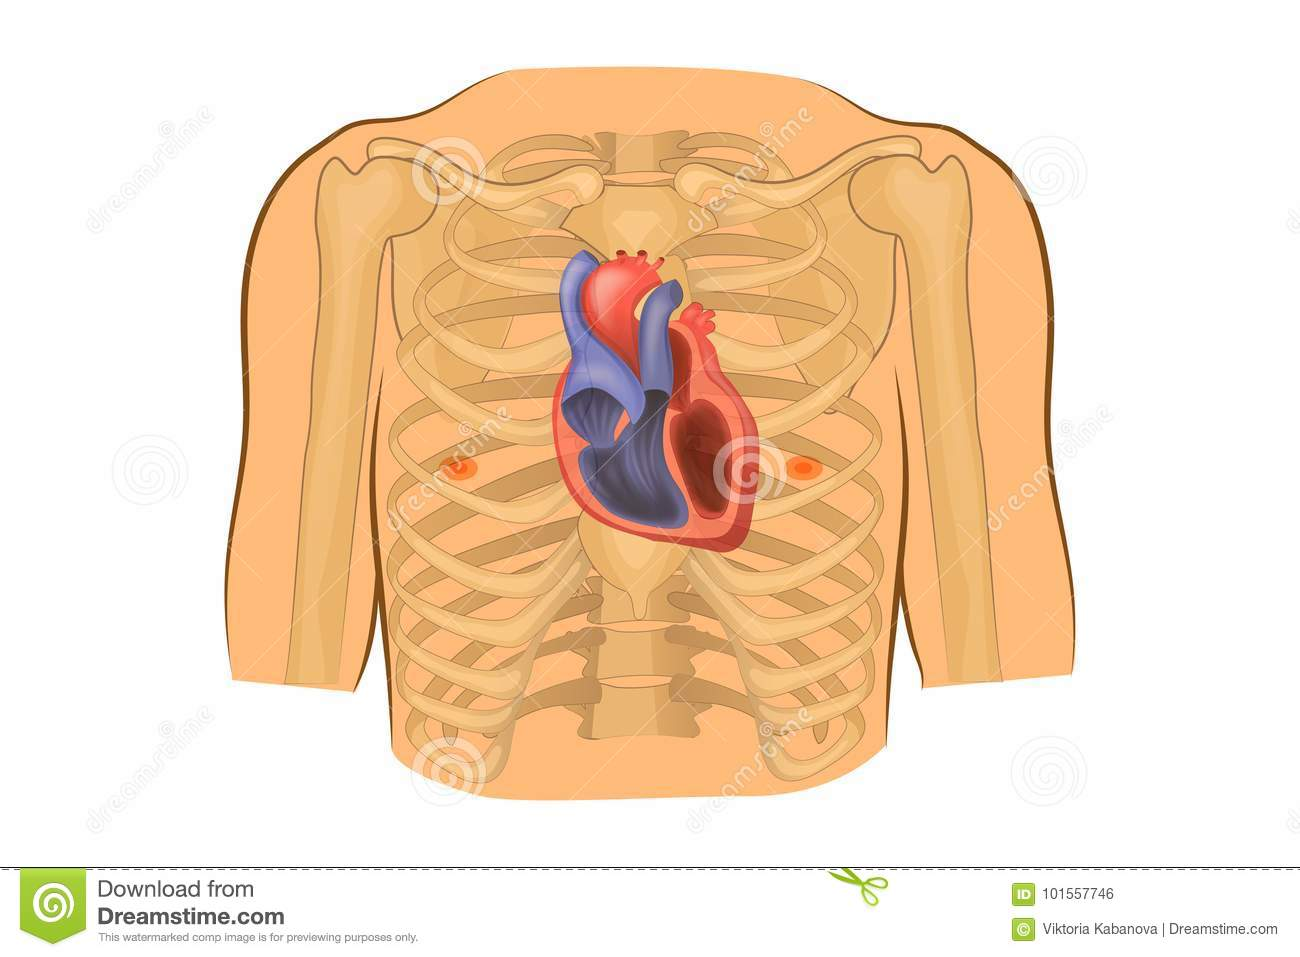 Heart In The Chest Stock Vector Illustration Of Circulation 101557746